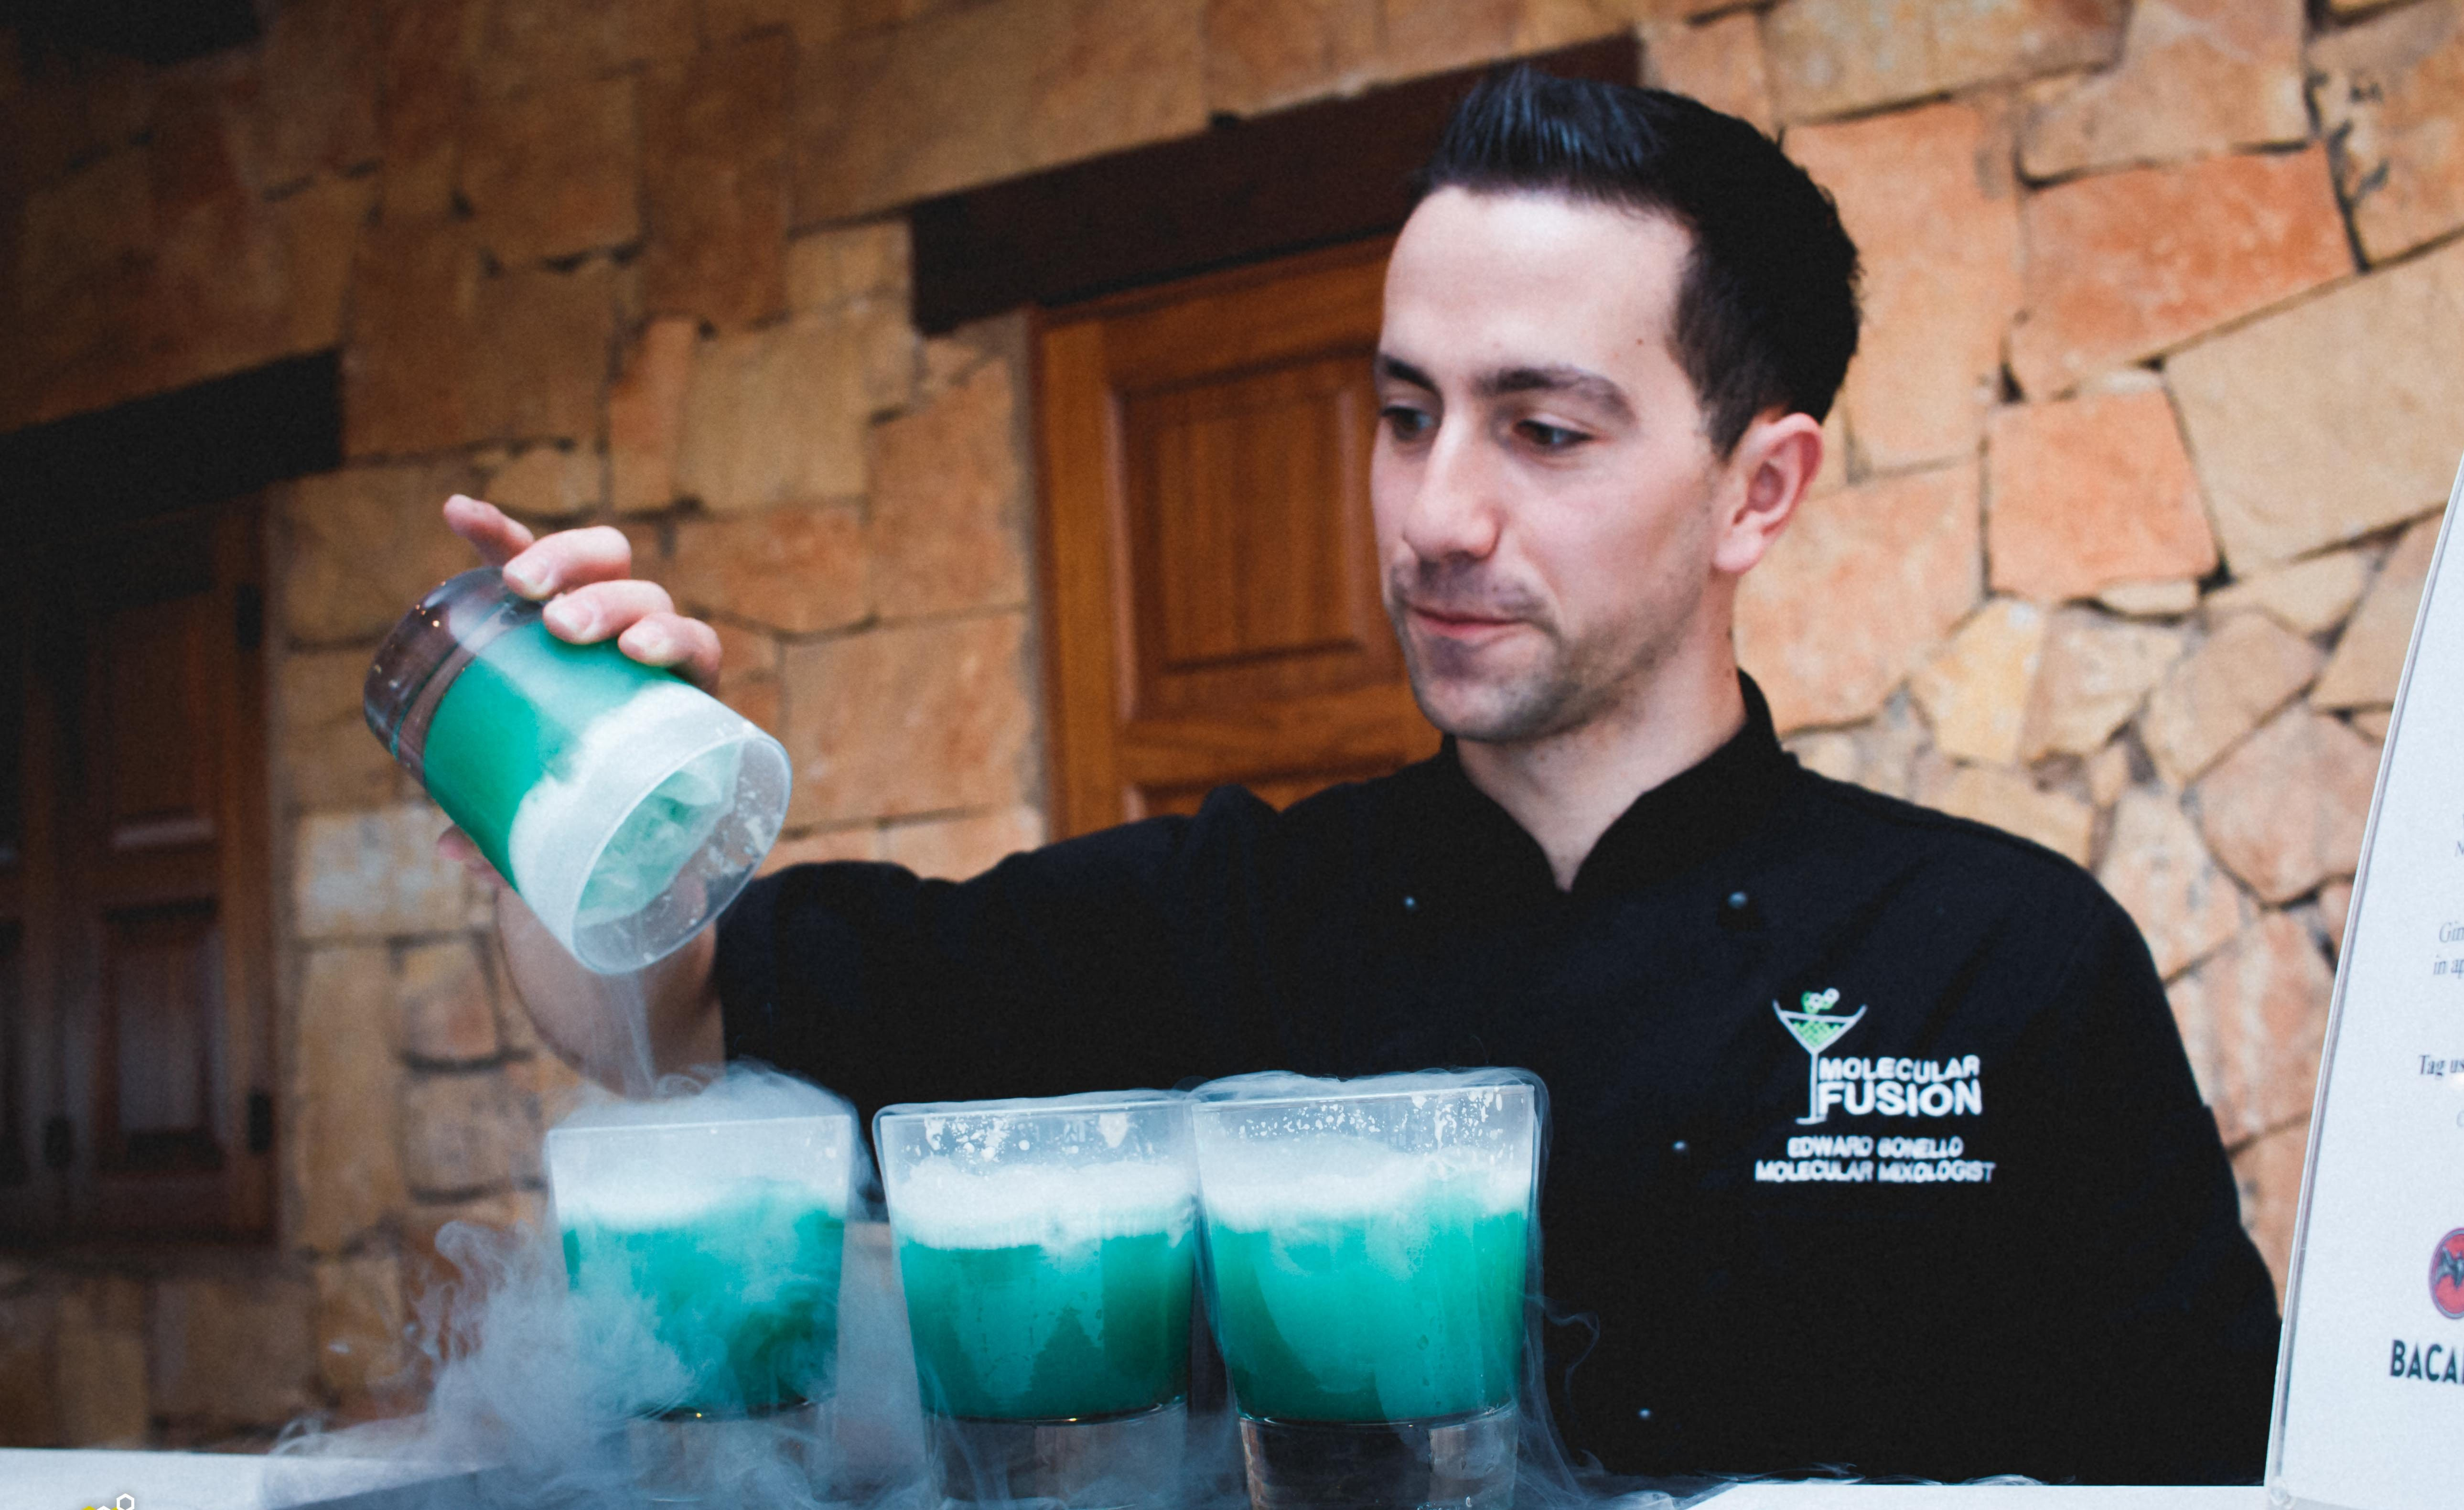 The Man Behind the Cocktail